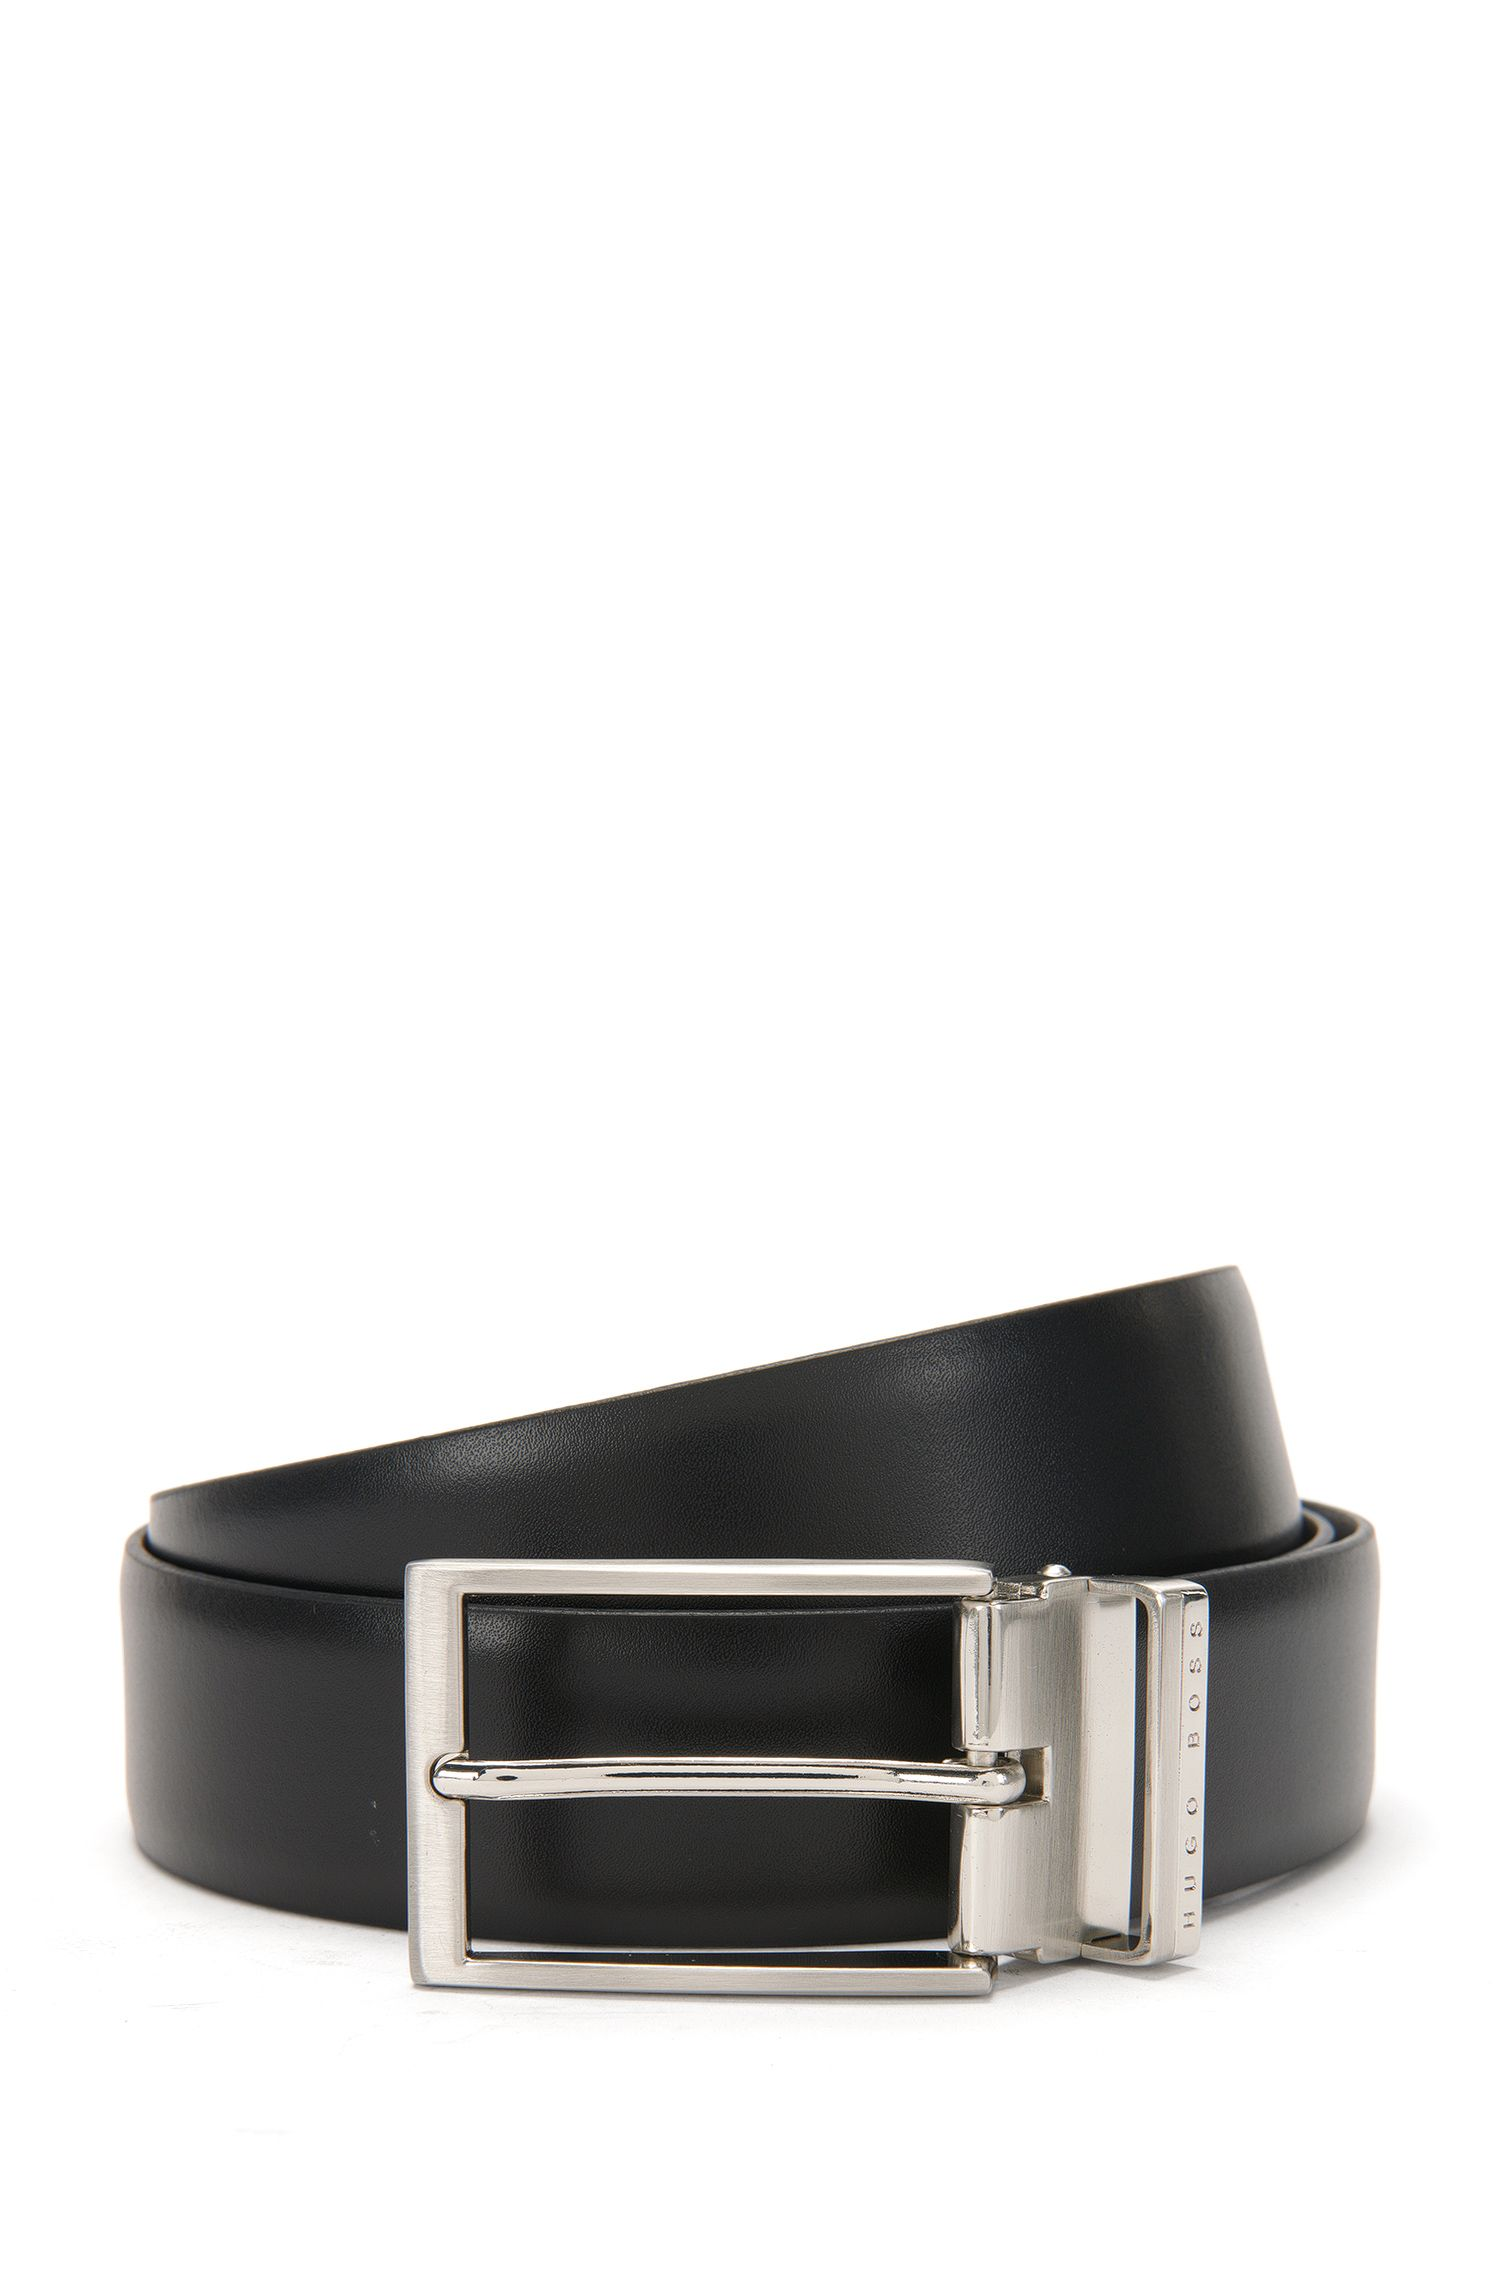 'Gale Gb Pp' | Leather Reversible, Convertible Buckle Belt